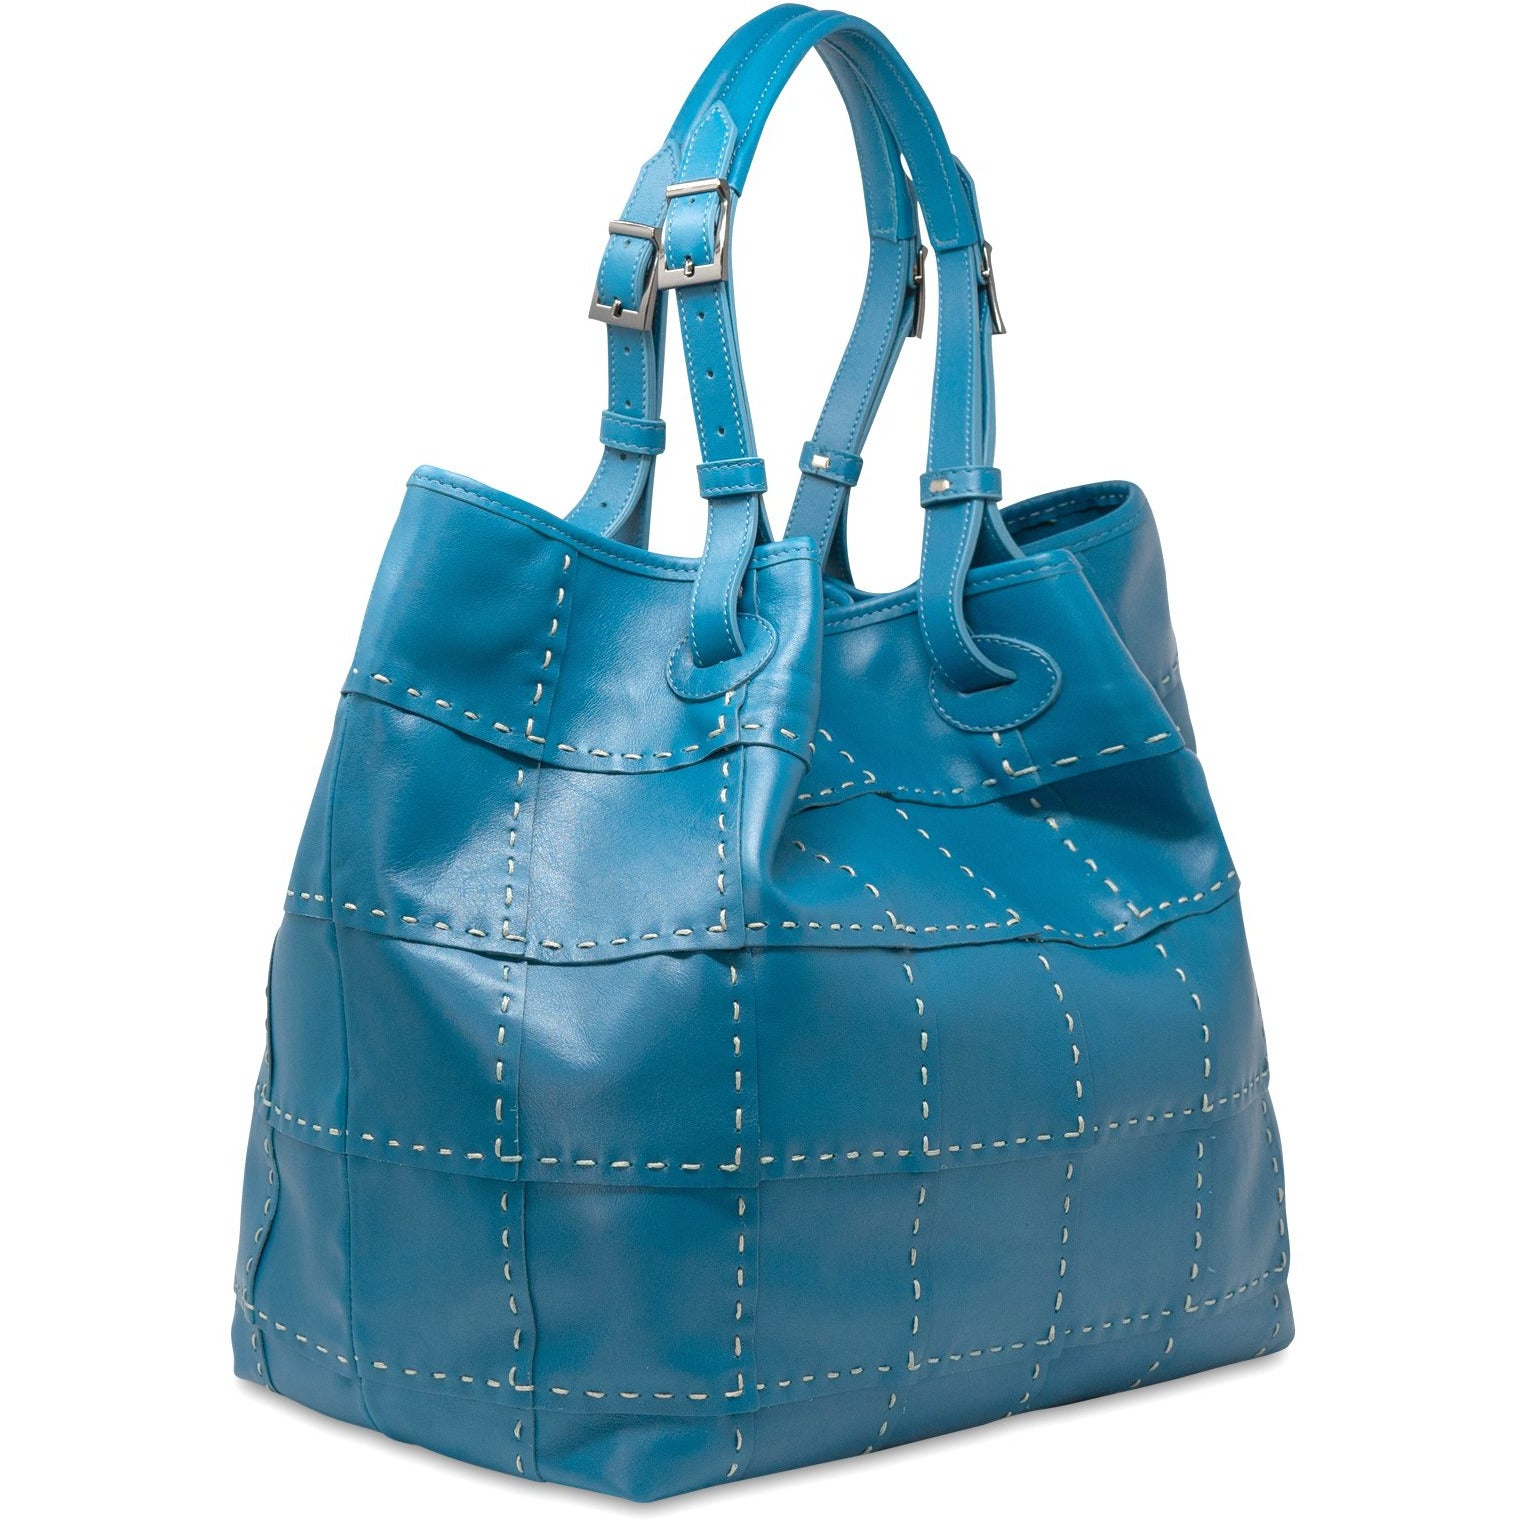 ARTSARA Women Leather Tote Bag - Jennifer Tattanelli